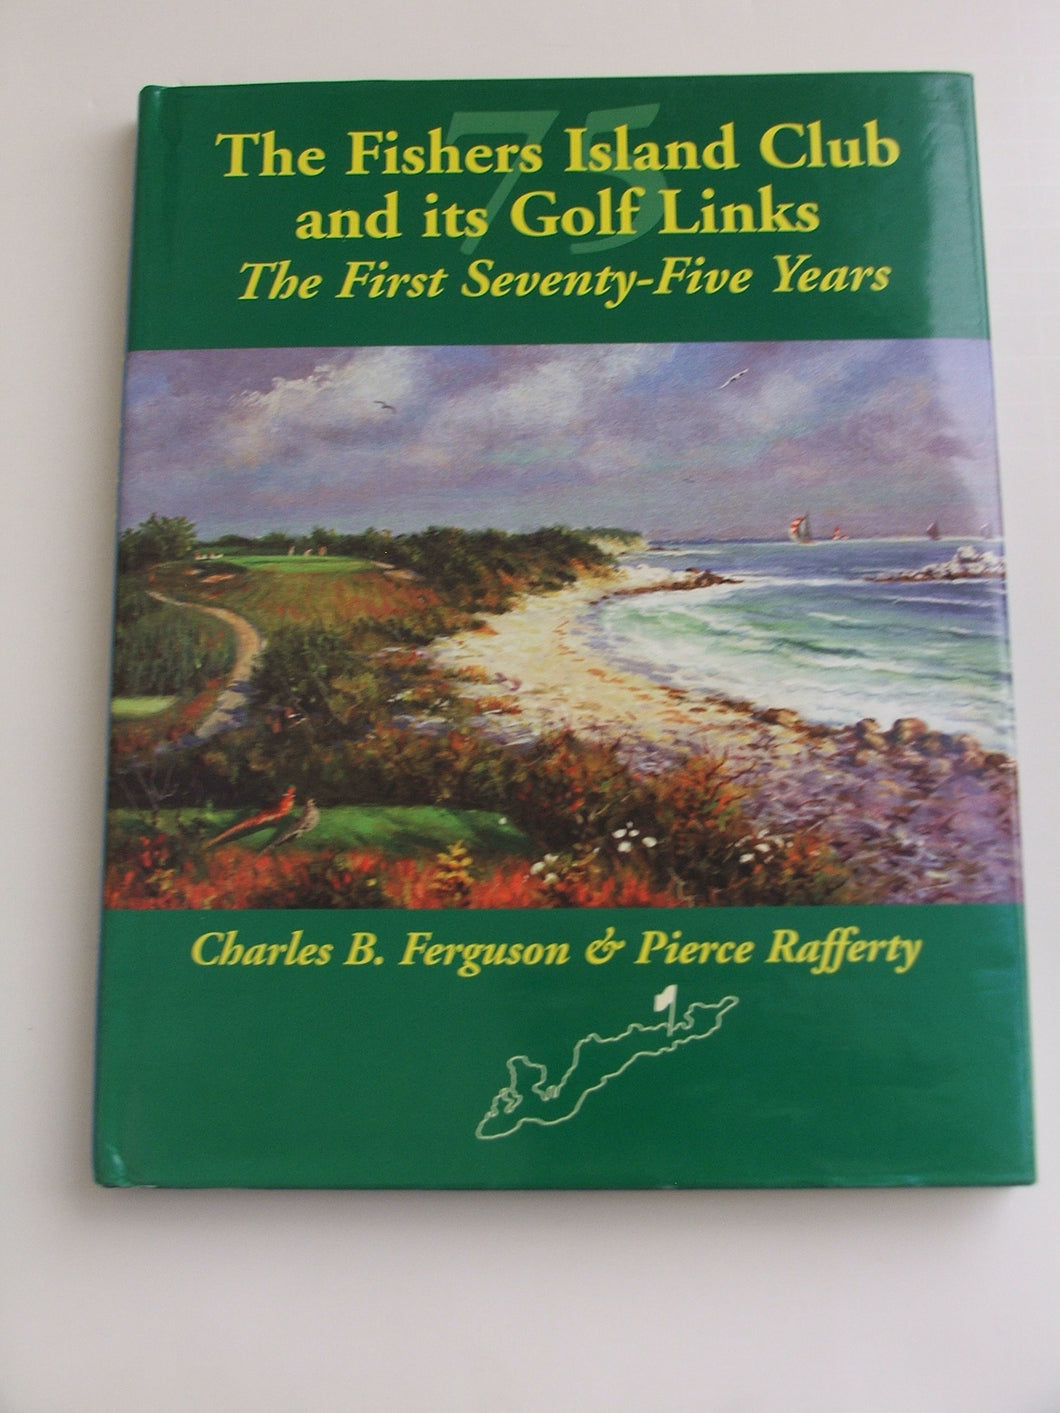 The Fishers Island Club and Golf Links The First Seventy Five Years